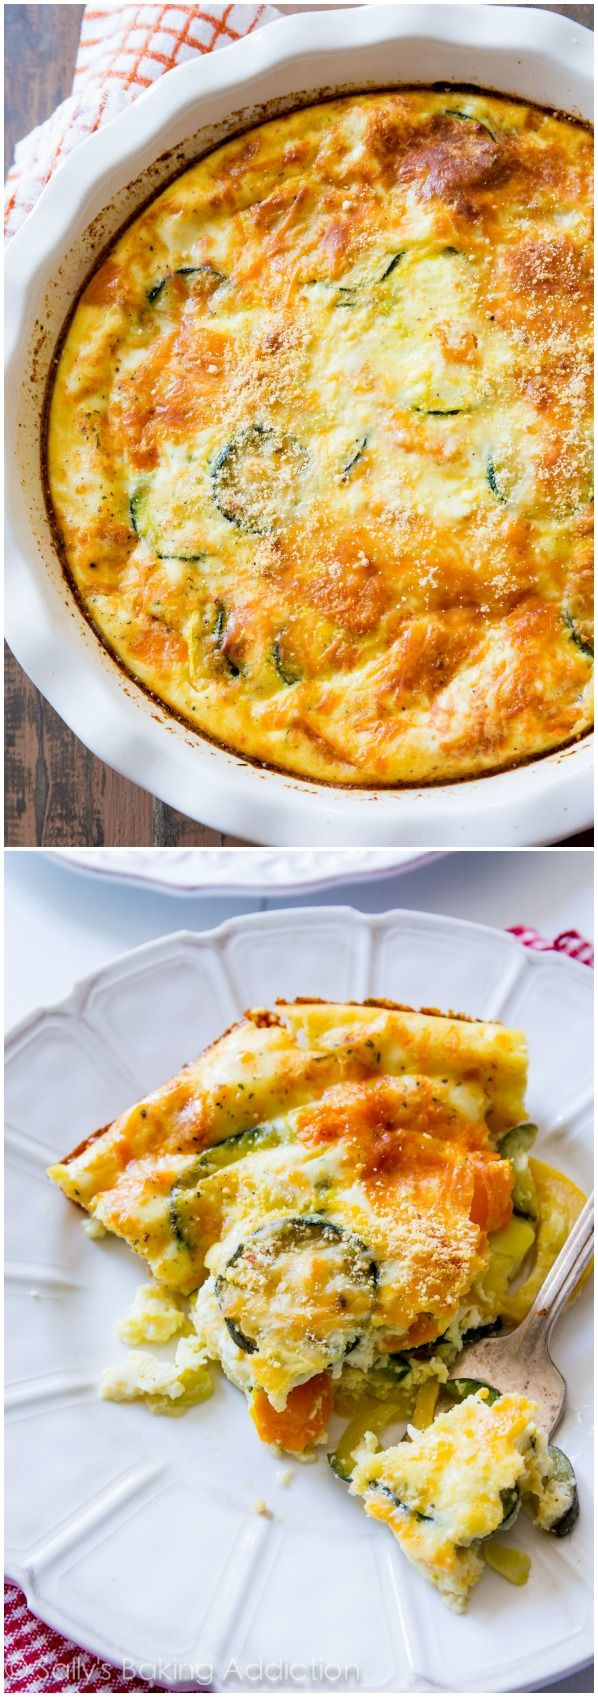 A lightened-up, healthy crustless quiche with heavy flavor and only 110 calories per giant serving!